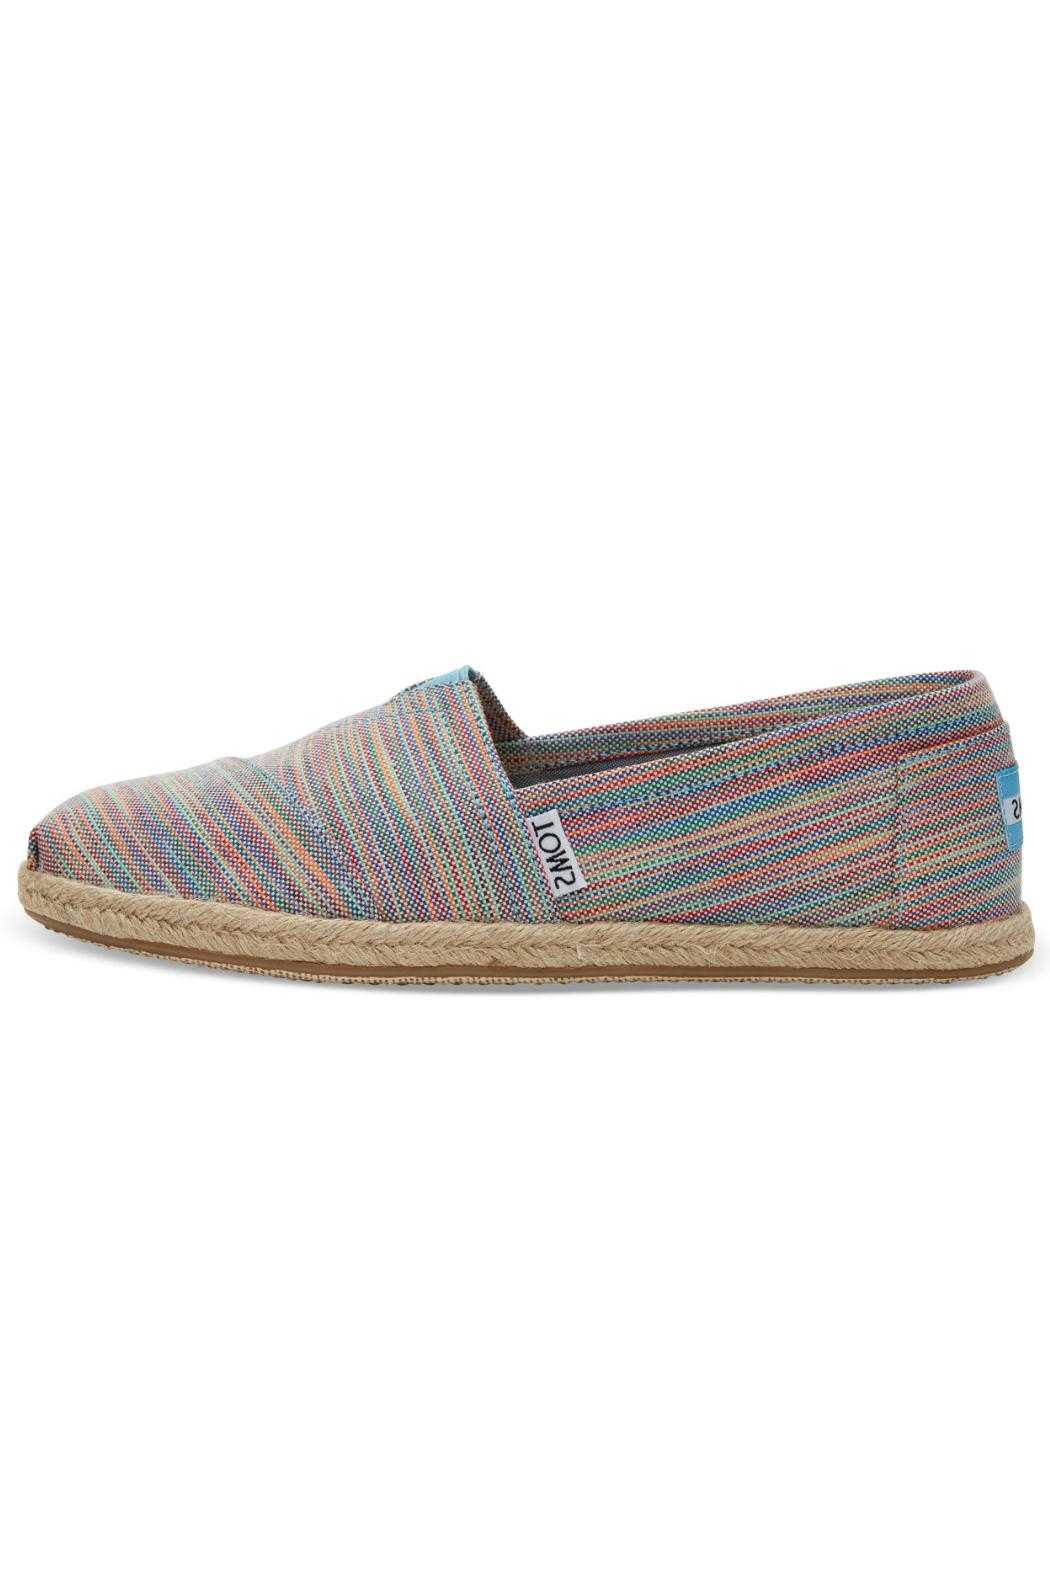 TOMS Rainbow Espadrille Shoes - Main Image